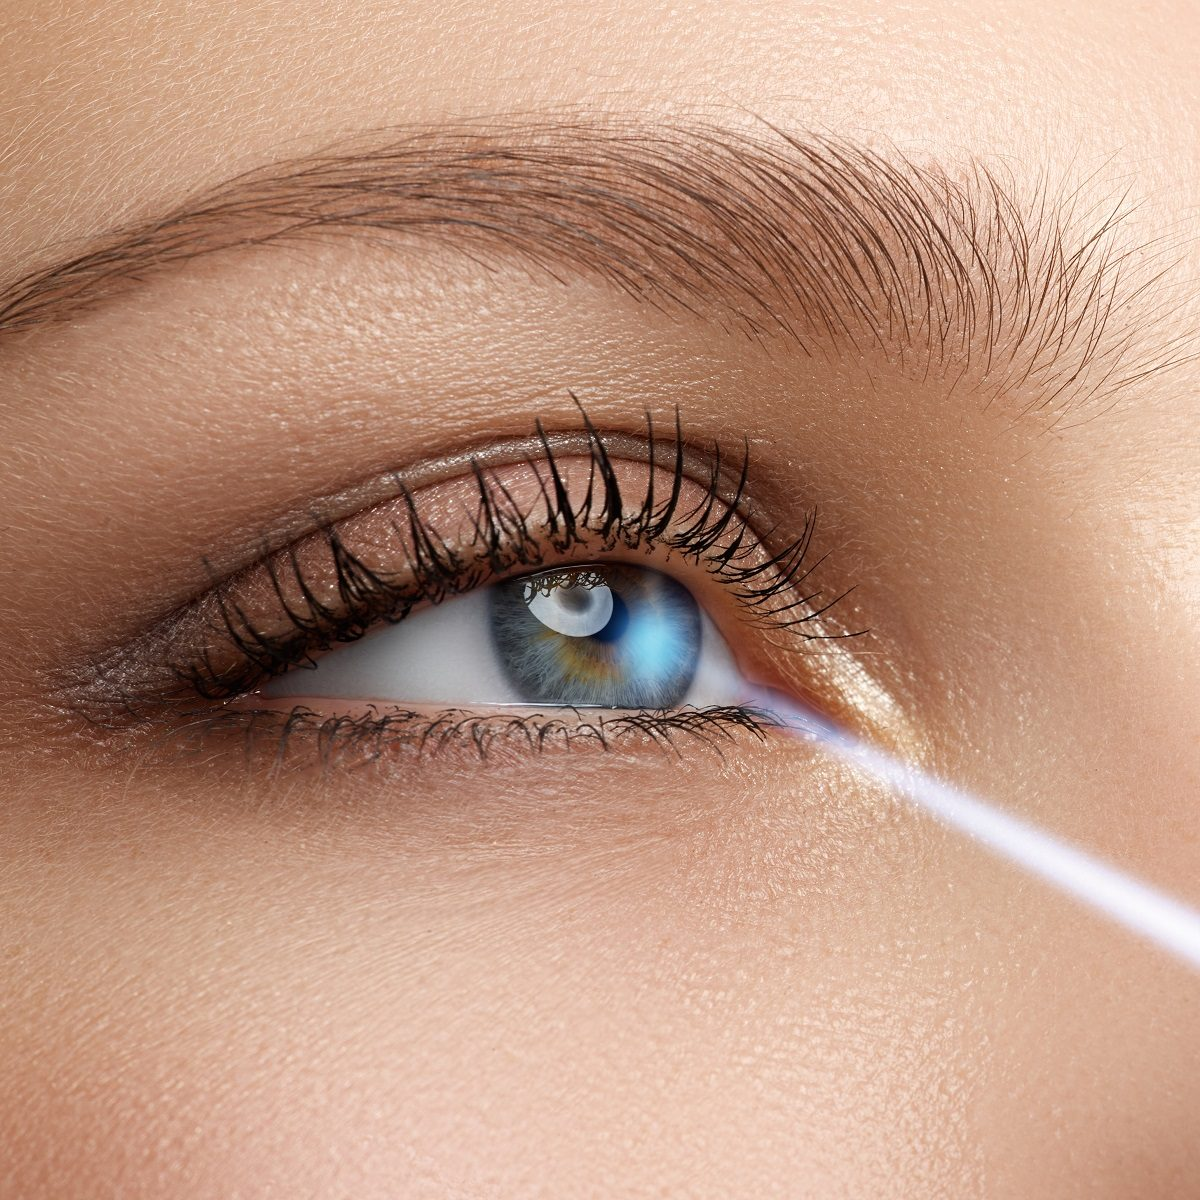 Comfortable LASIK procedure in La Jolla